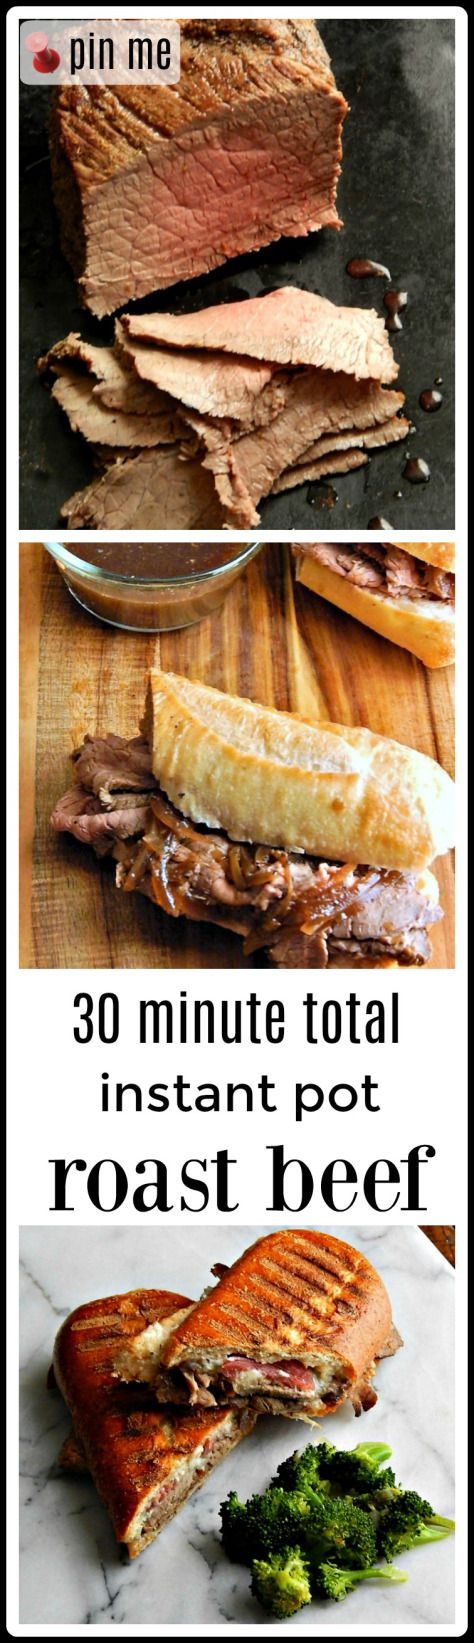 Instant Pot Roast Beef - from start to finish in 30 minutes! Total, including coming to pressure and release. The Roast if fantastic, but the leftovers? Even better!!